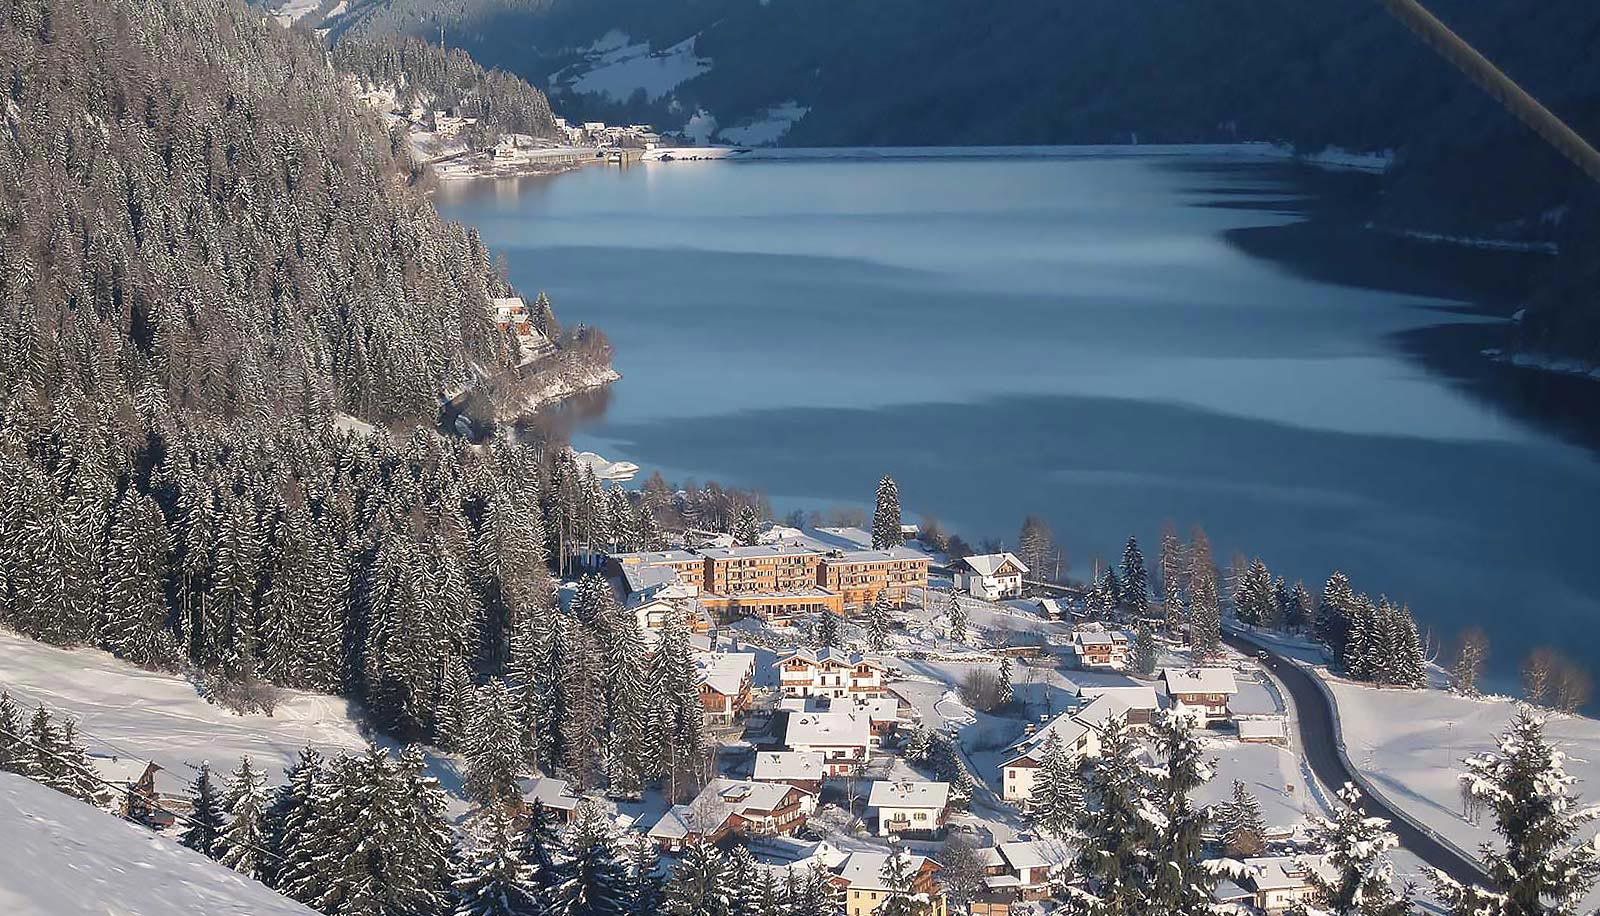 Snowy Arosea Hotel in Ultental-Val d'Ultimo on the banks of Zoggler Stausee-Lago di Zoccolo